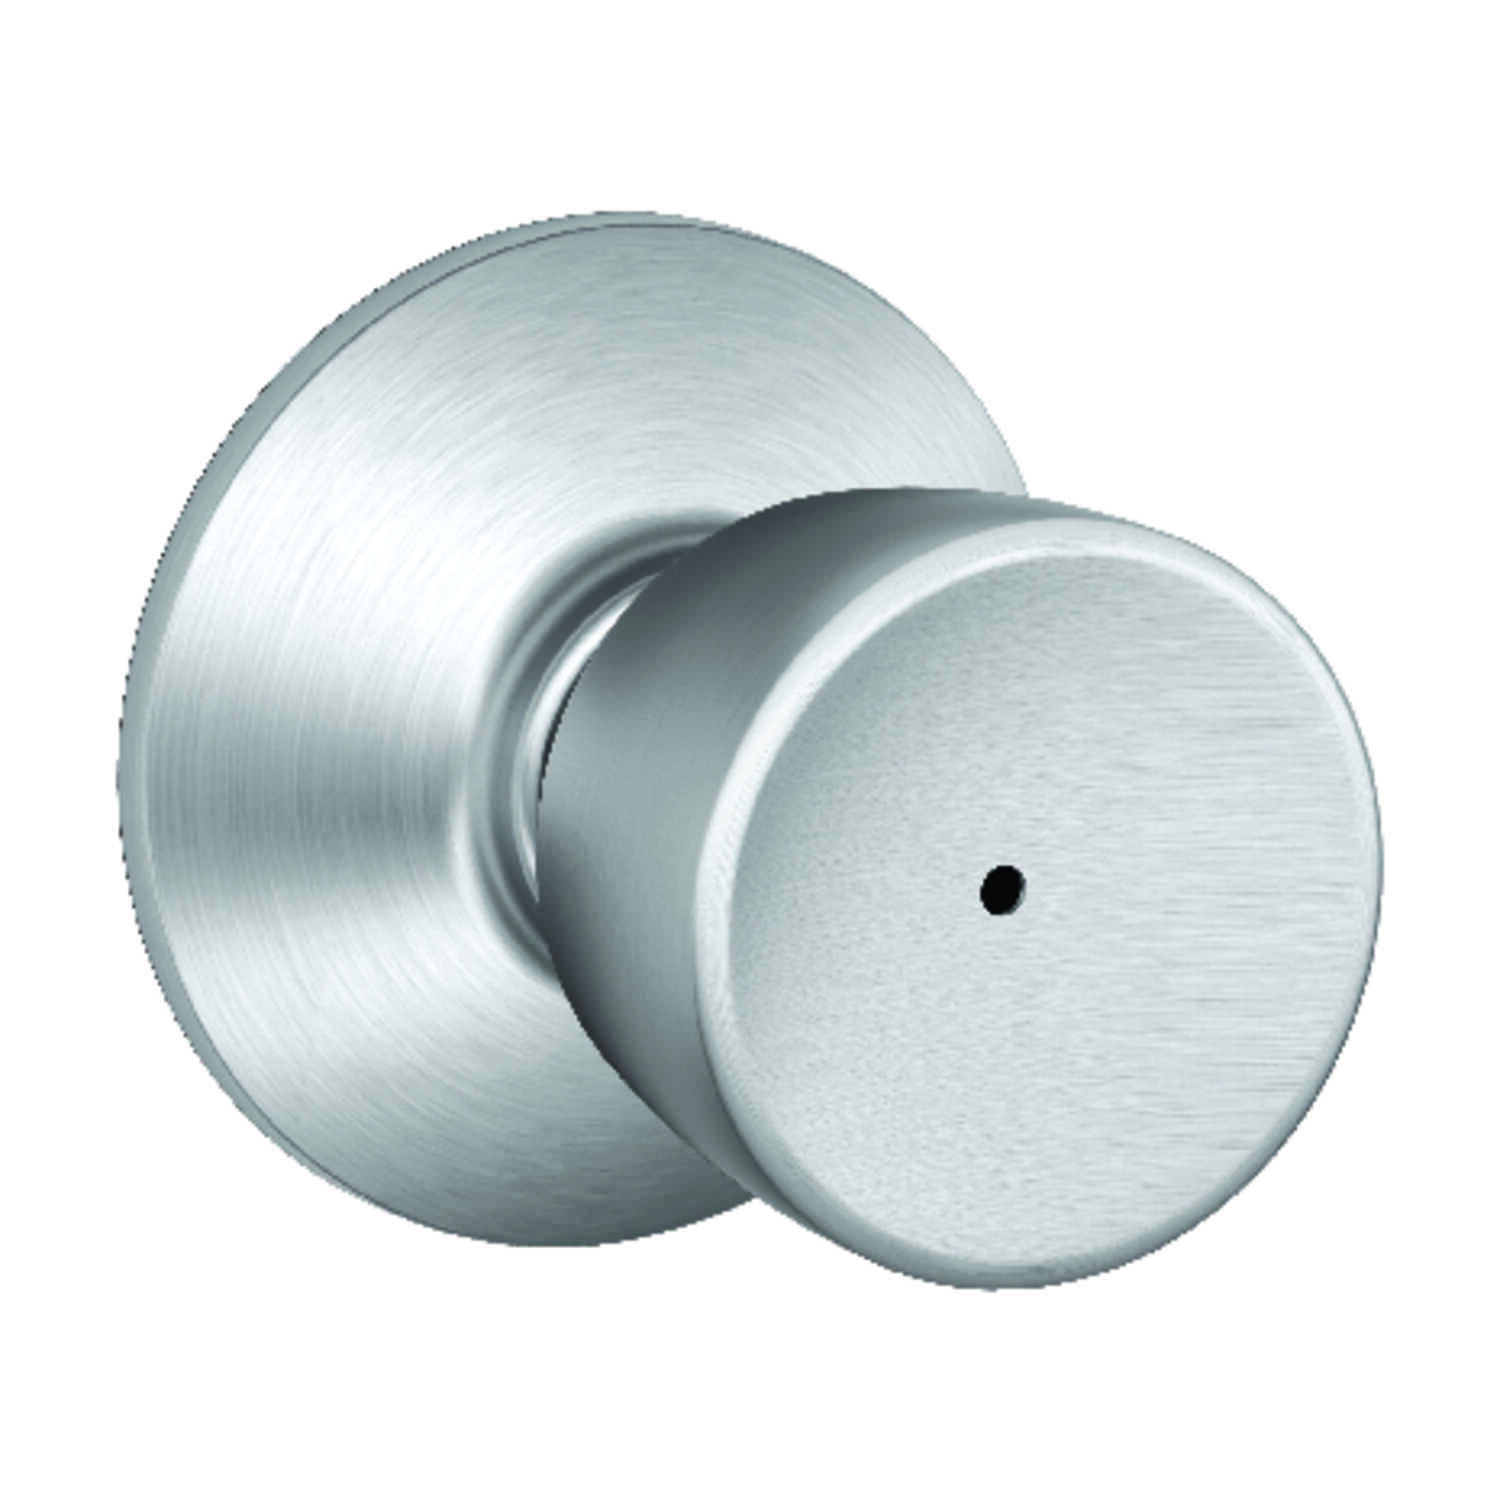 Schlage  Bell  Satin Chrome  Privacy Lock  ANSI Grade 2  1-3/4 in.